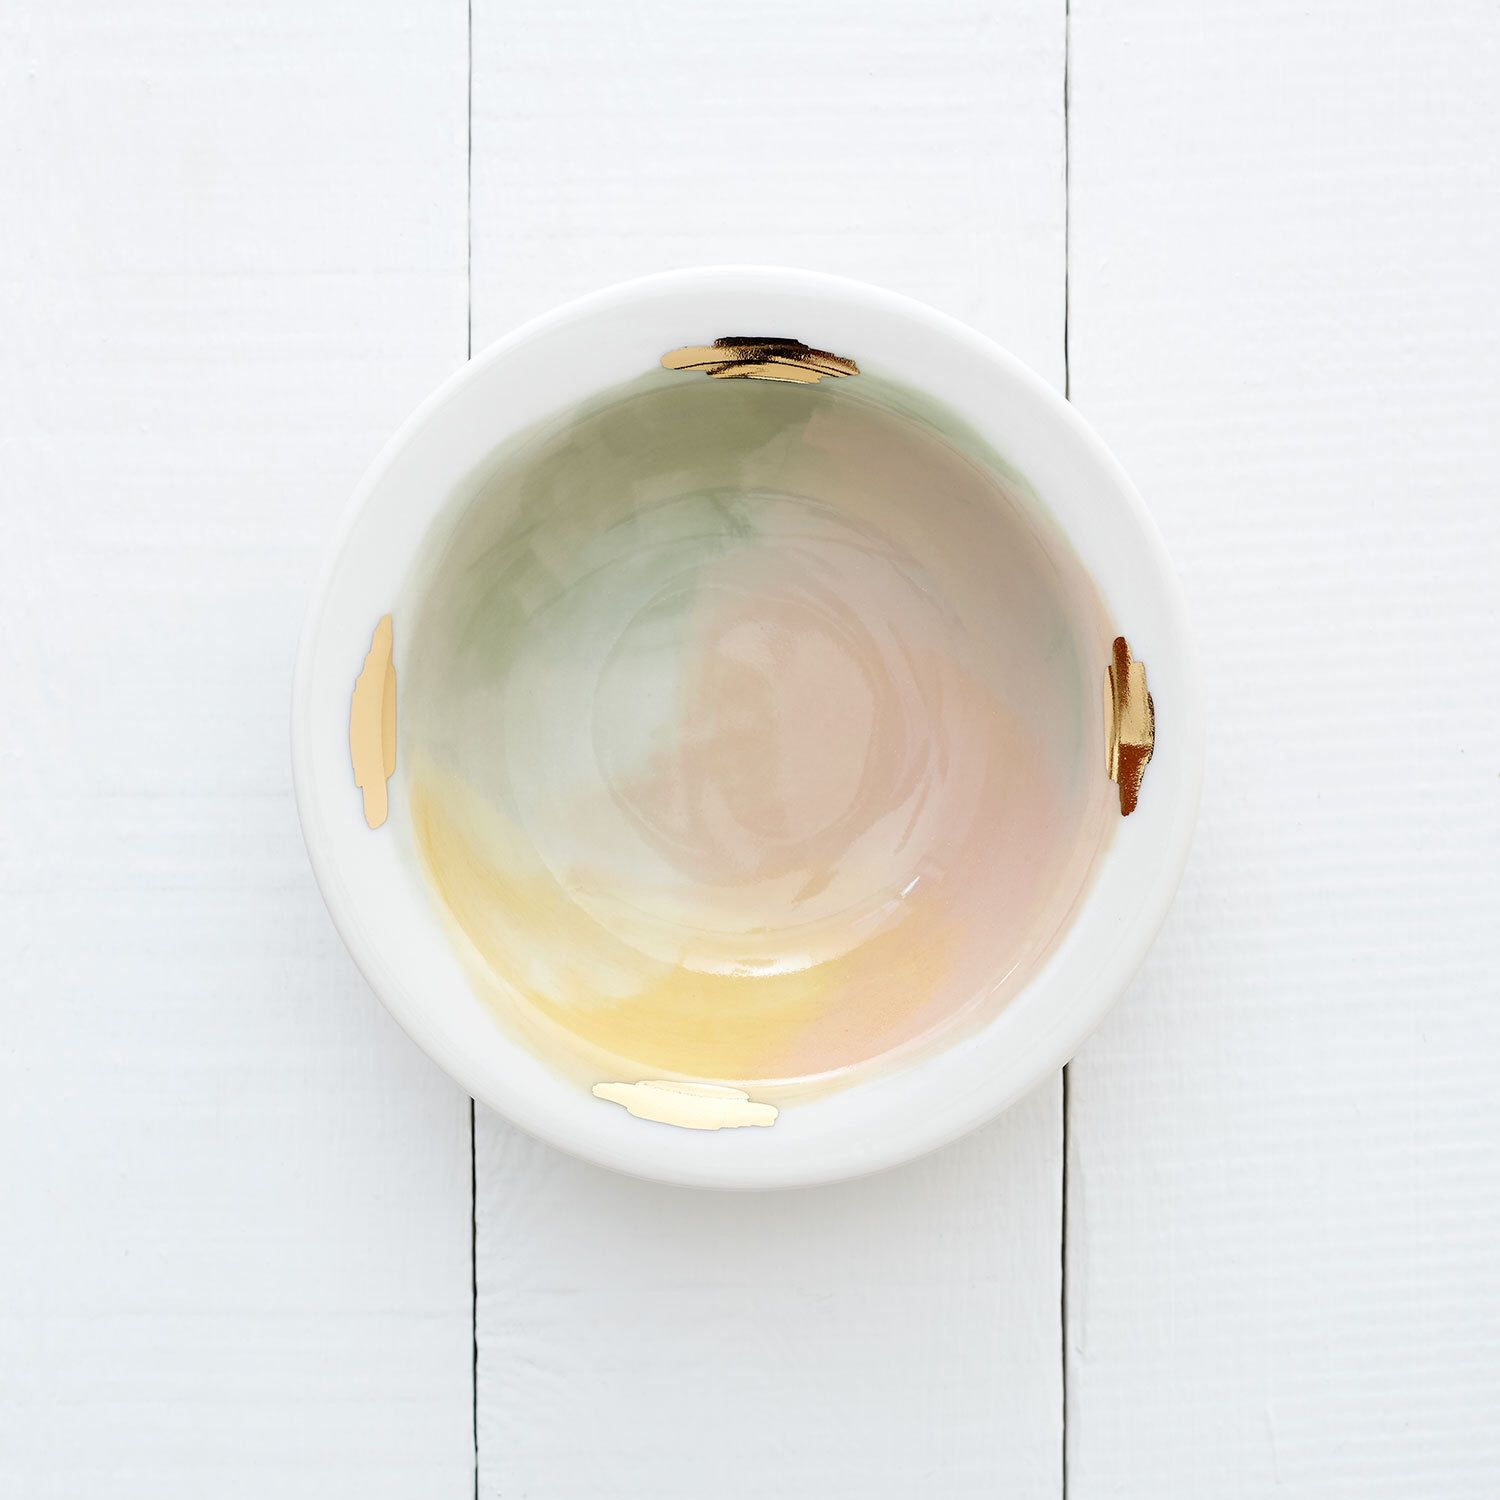 Denali Porcelain Bowl // Handpainted Organic Bowl in Pink, Yellow, and Mint Green // Perfect for an Organic Modern Kitchen by redravenstudios on Etsy https://www.etsy.com/listing/243796792/denali-porcelain-bowl-handpainted